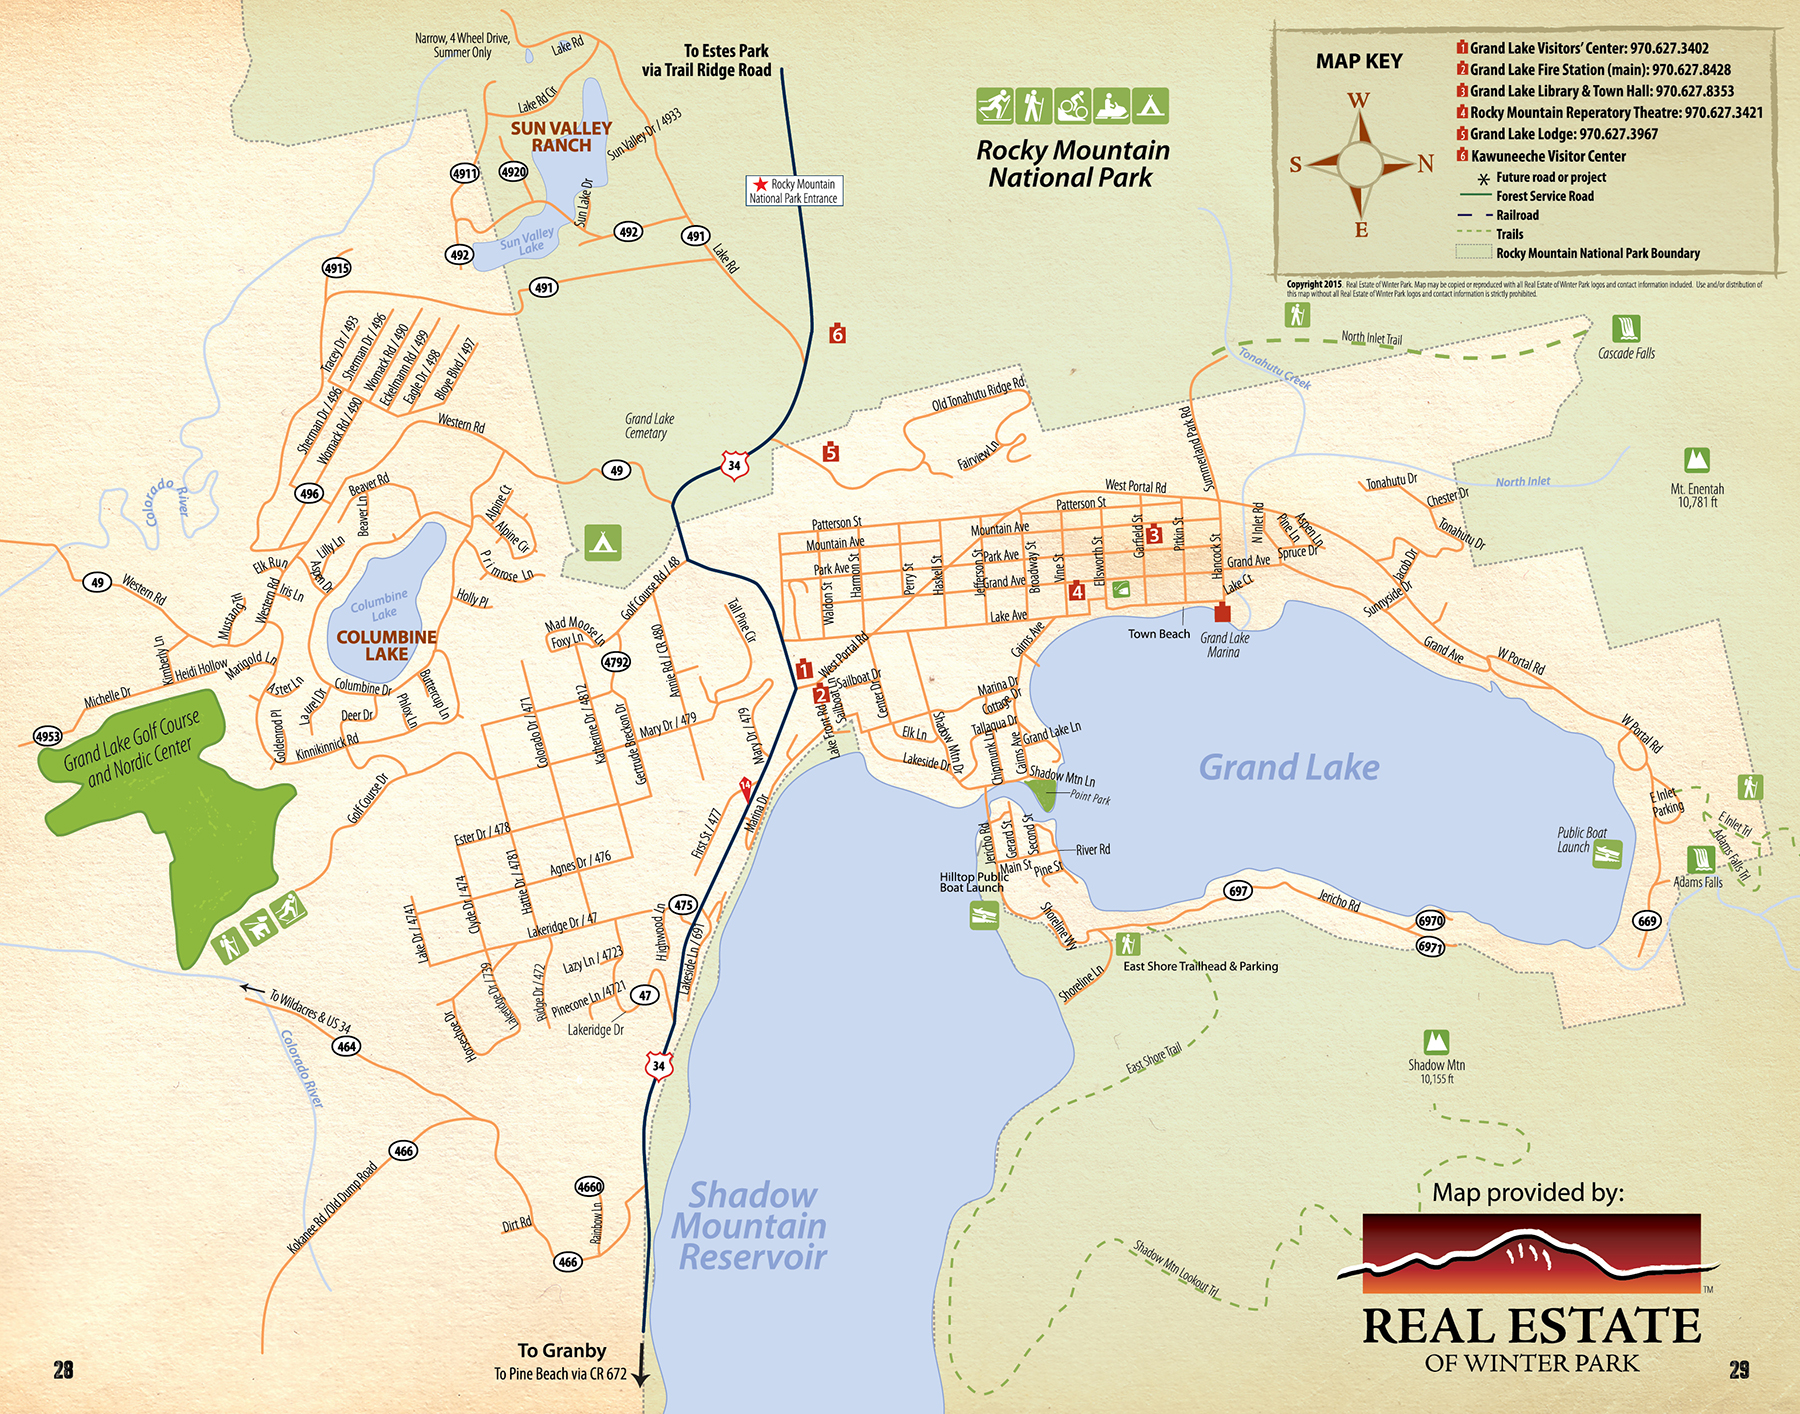 Grand Lake Map Grand Lake Town Map | Free GuestGuide Publications   Grand County Grand Lake Map